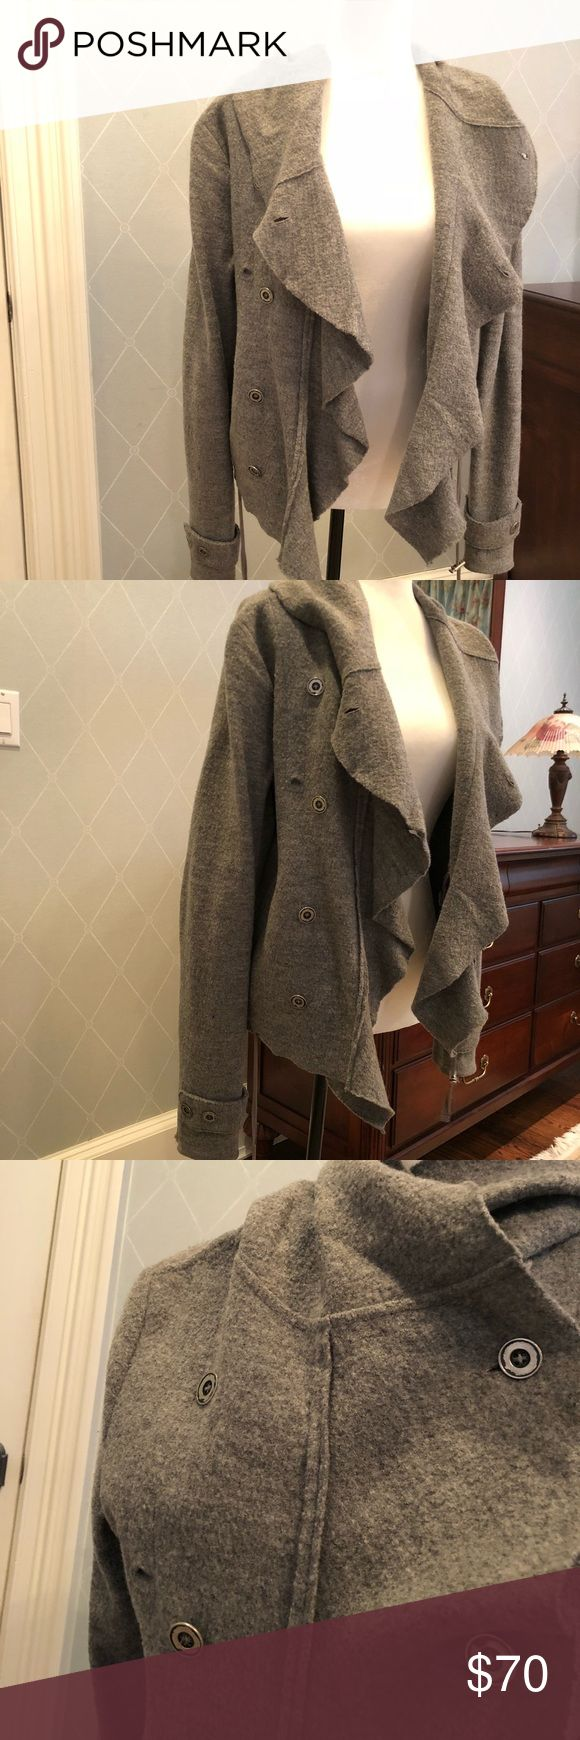 Free people jacket The cutest free people jacket in great condition! Free People Jackets & Coats